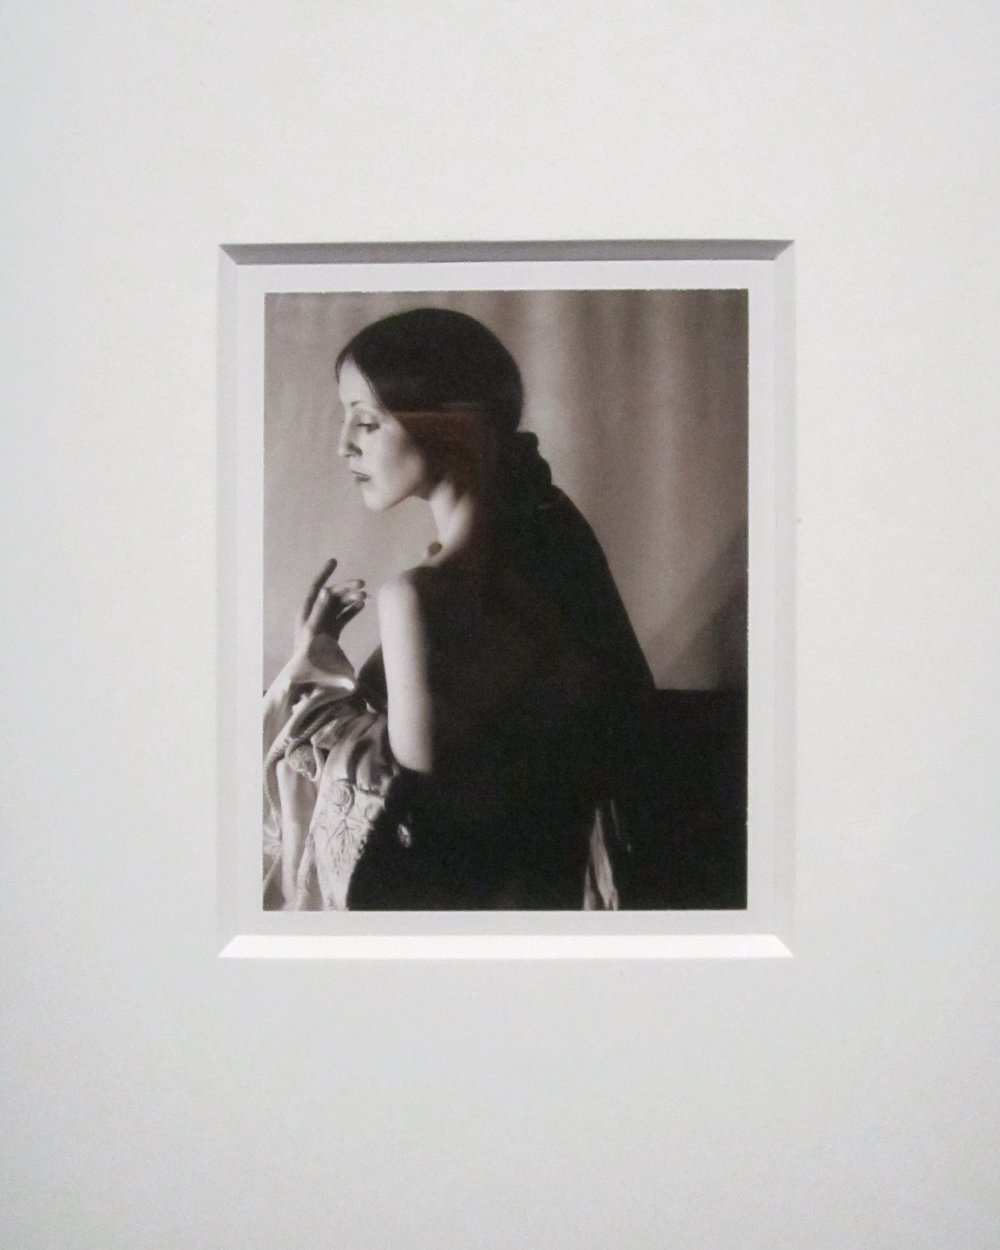 Robert Mapplethorpe,  Untitled (Terry),  Dye diffusion transfer print, 1974.